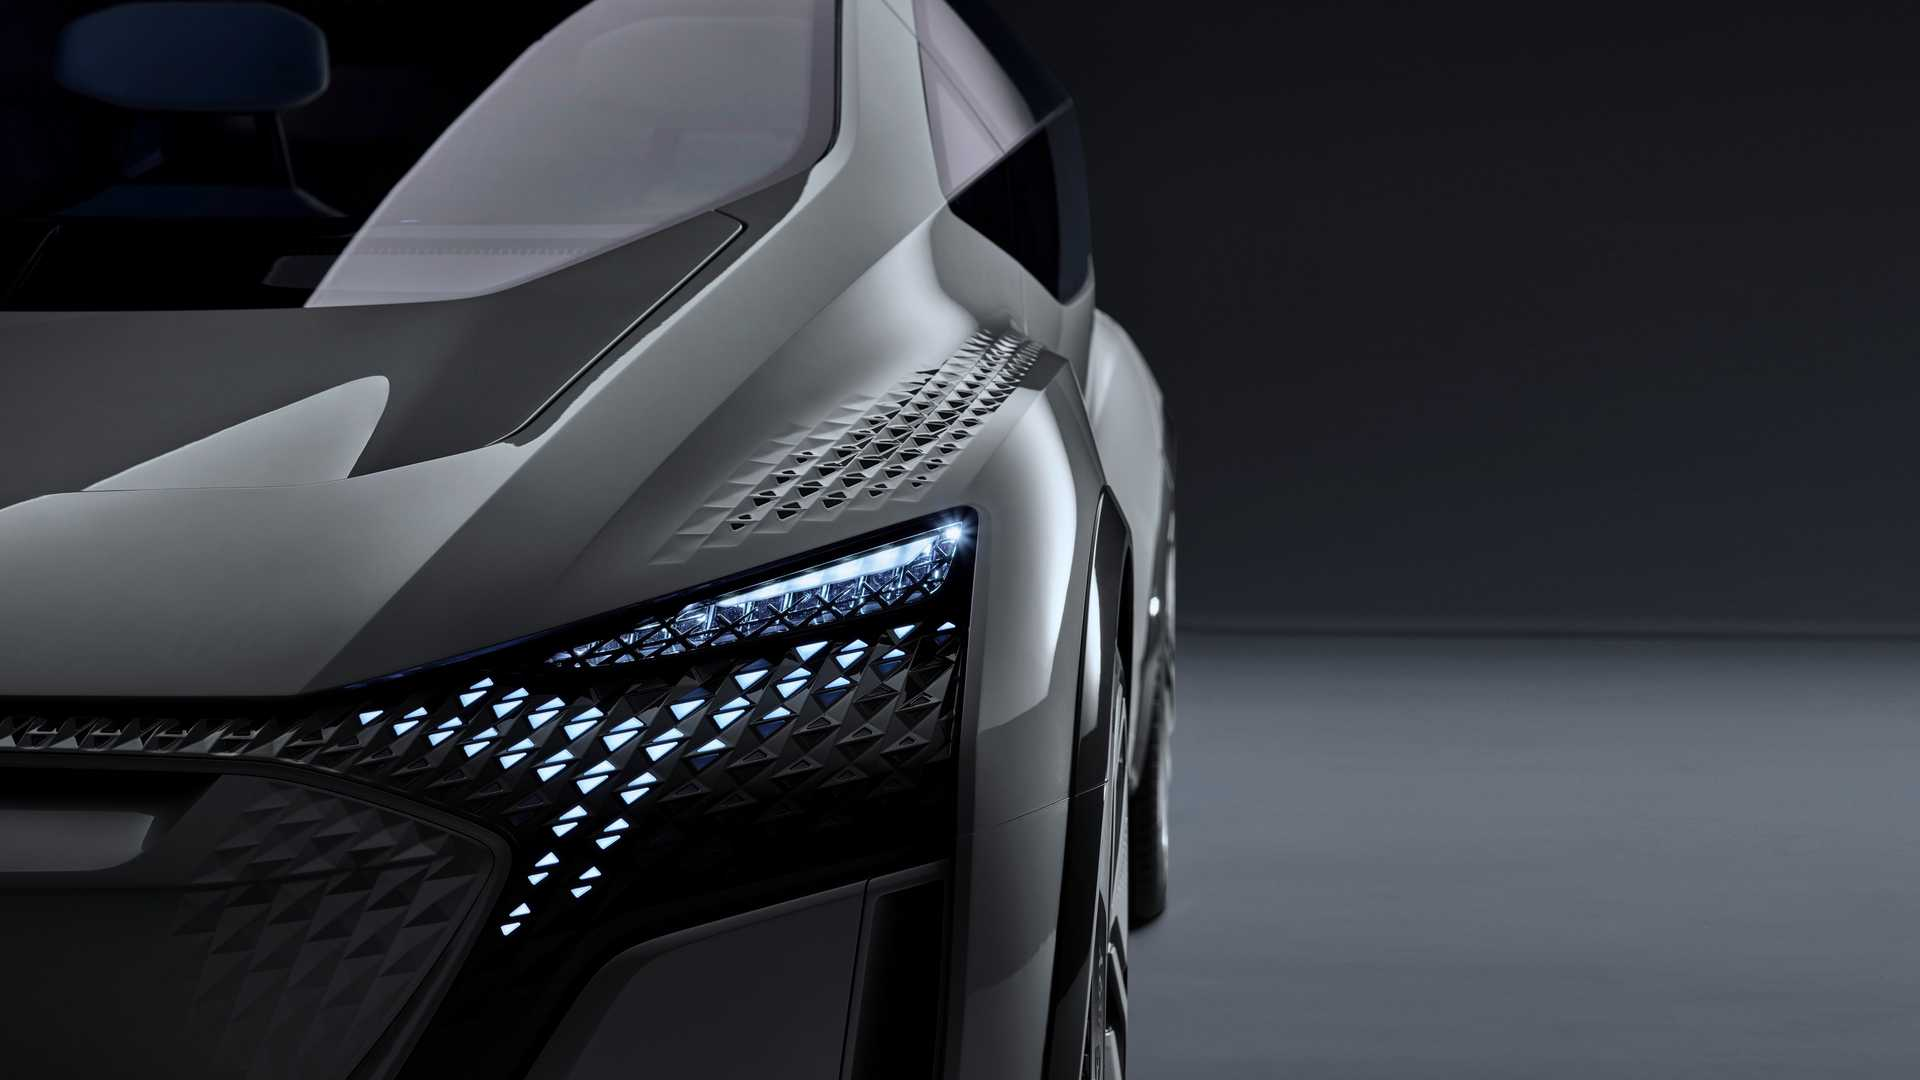 Audi has only recently revealed the first design sketches showing its innovative AI:me Concept and now we can look at the first real photographic image of the actual car